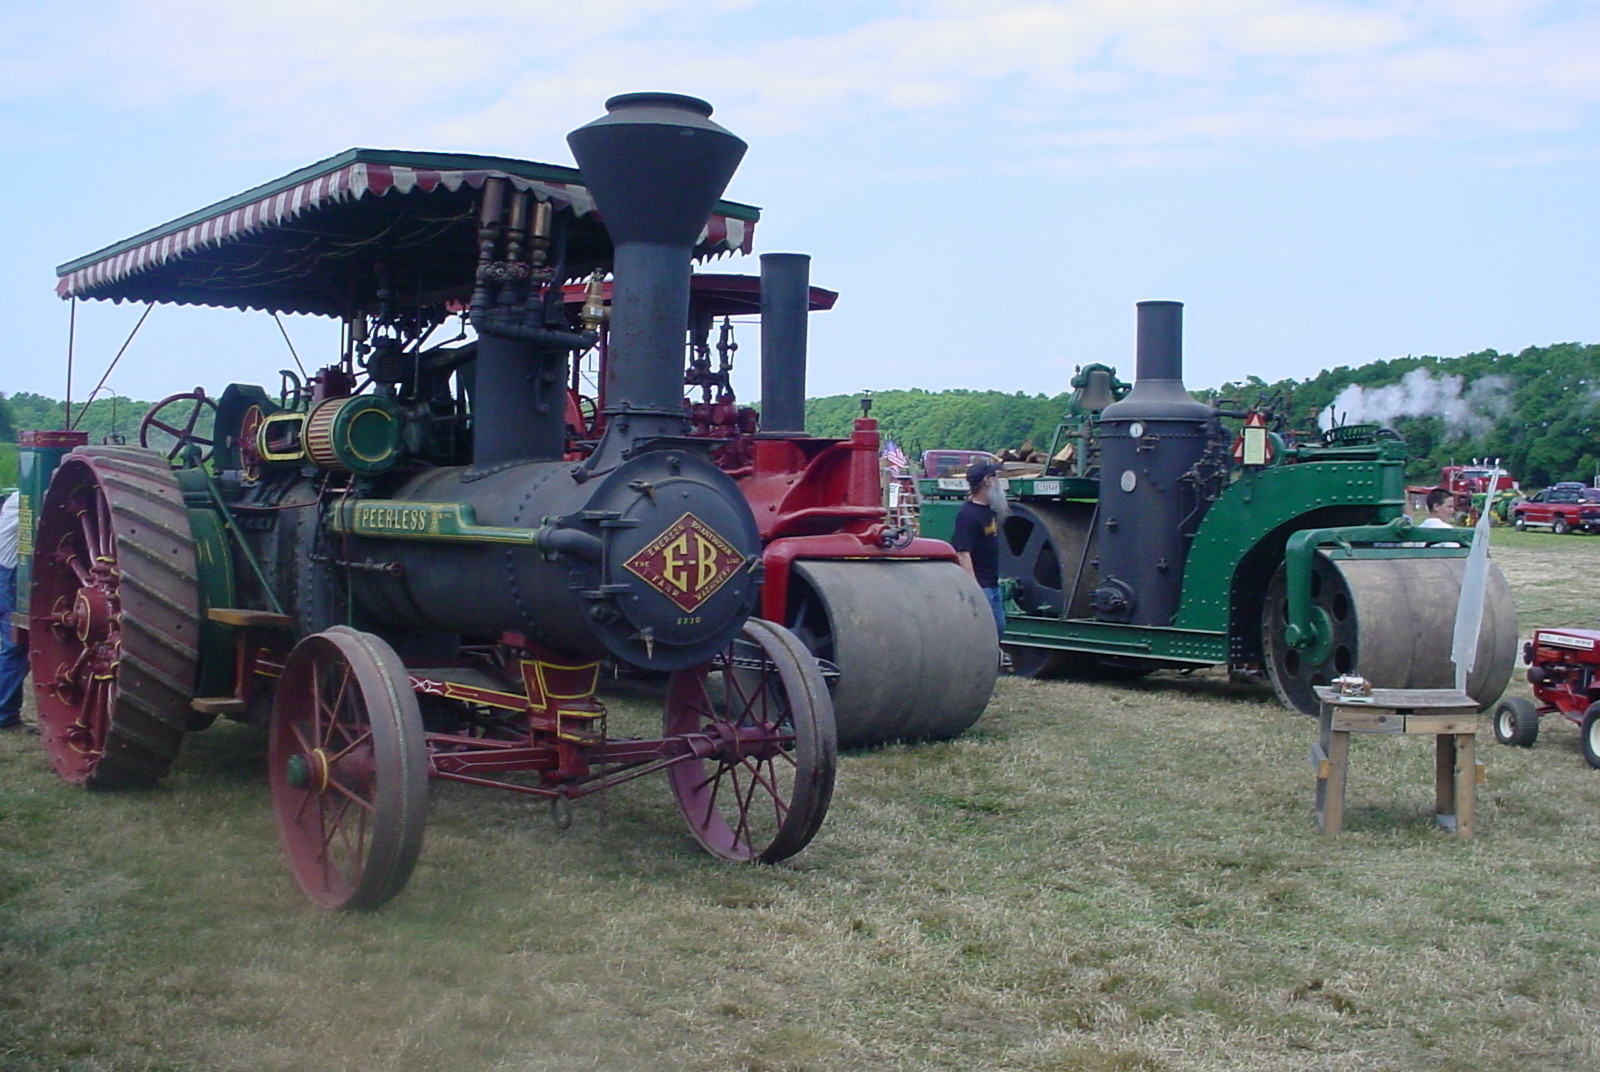 LIAPA's steam tractor & rollers